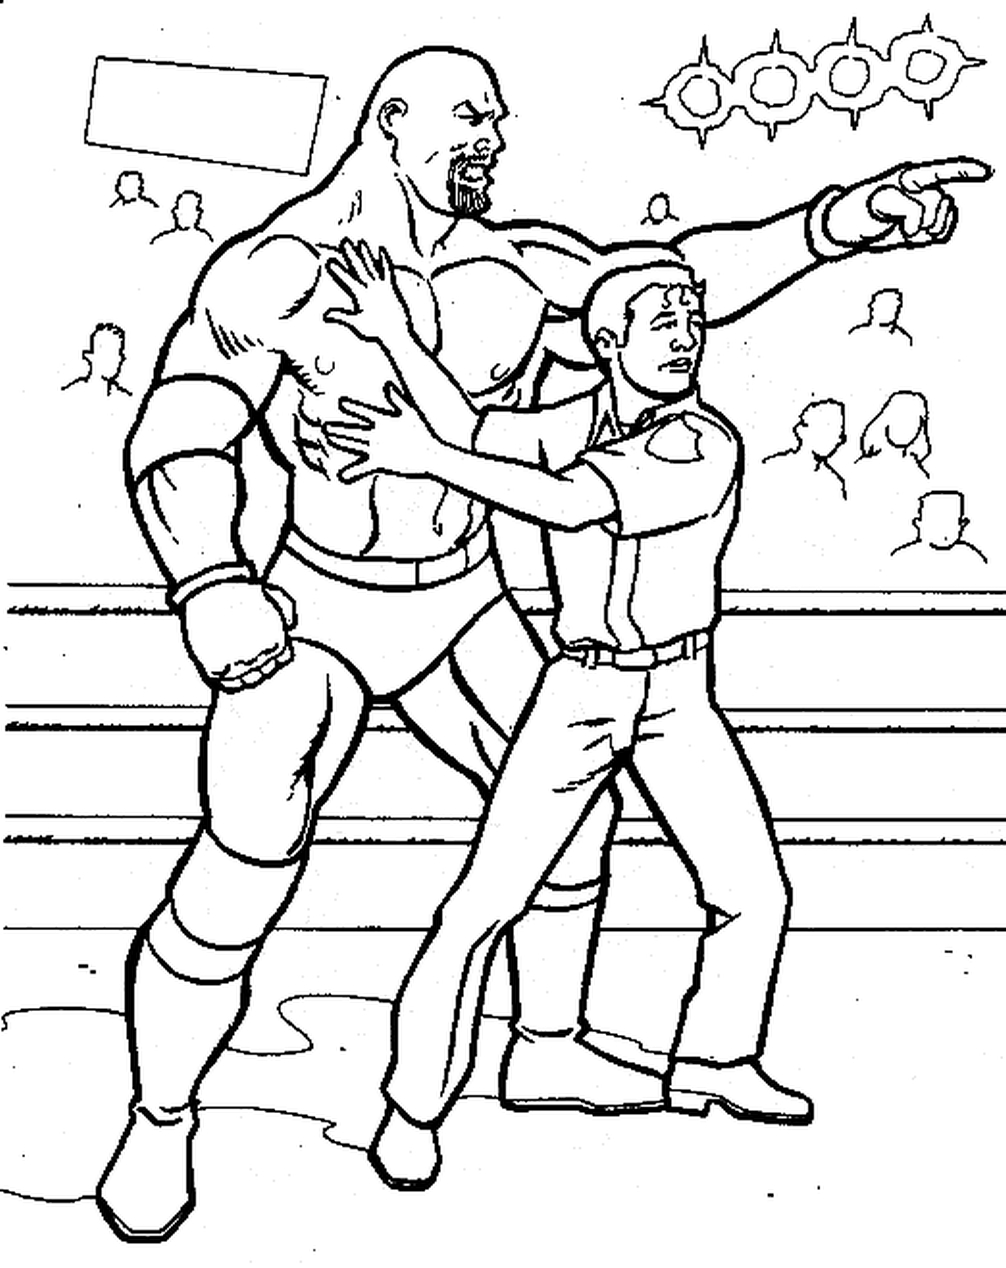 wwe coloring pages to print coloring pages of wwe wrestlers coloring home print to pages wwe coloring